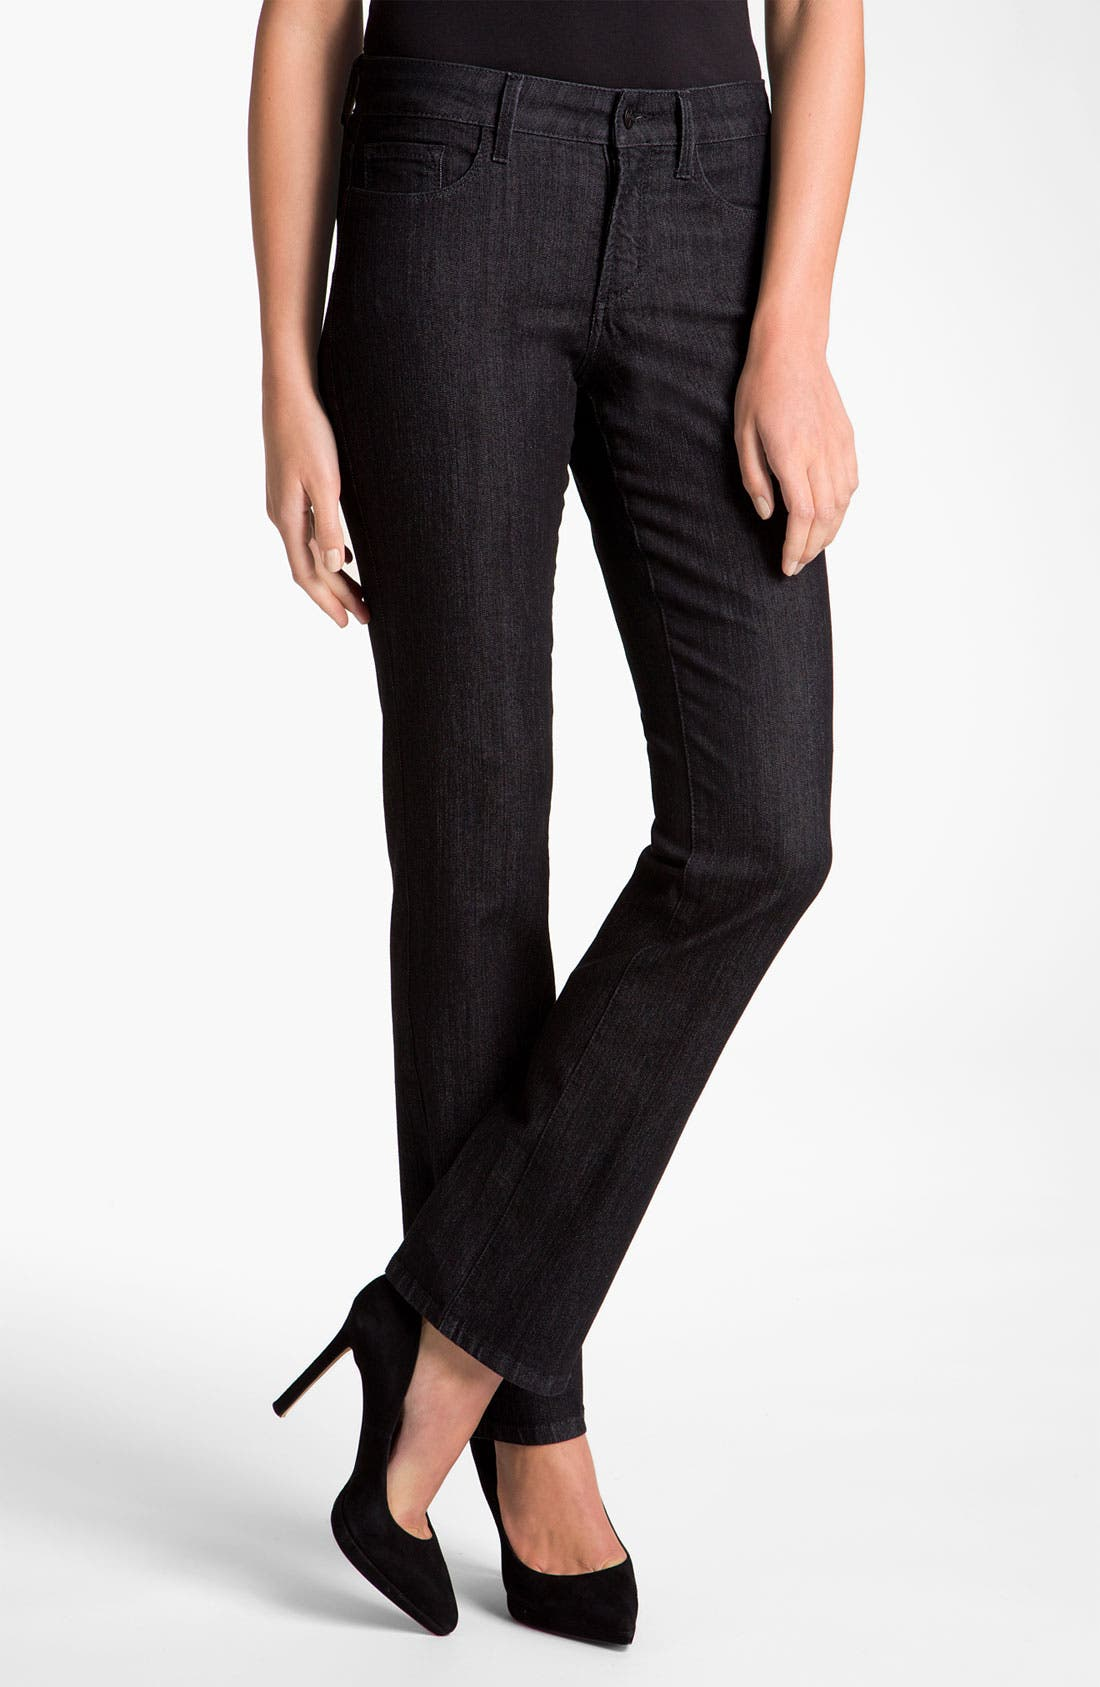 Alternate Image 1 Selected - NYDJ Embroidered Pocket Jeans (Petite)